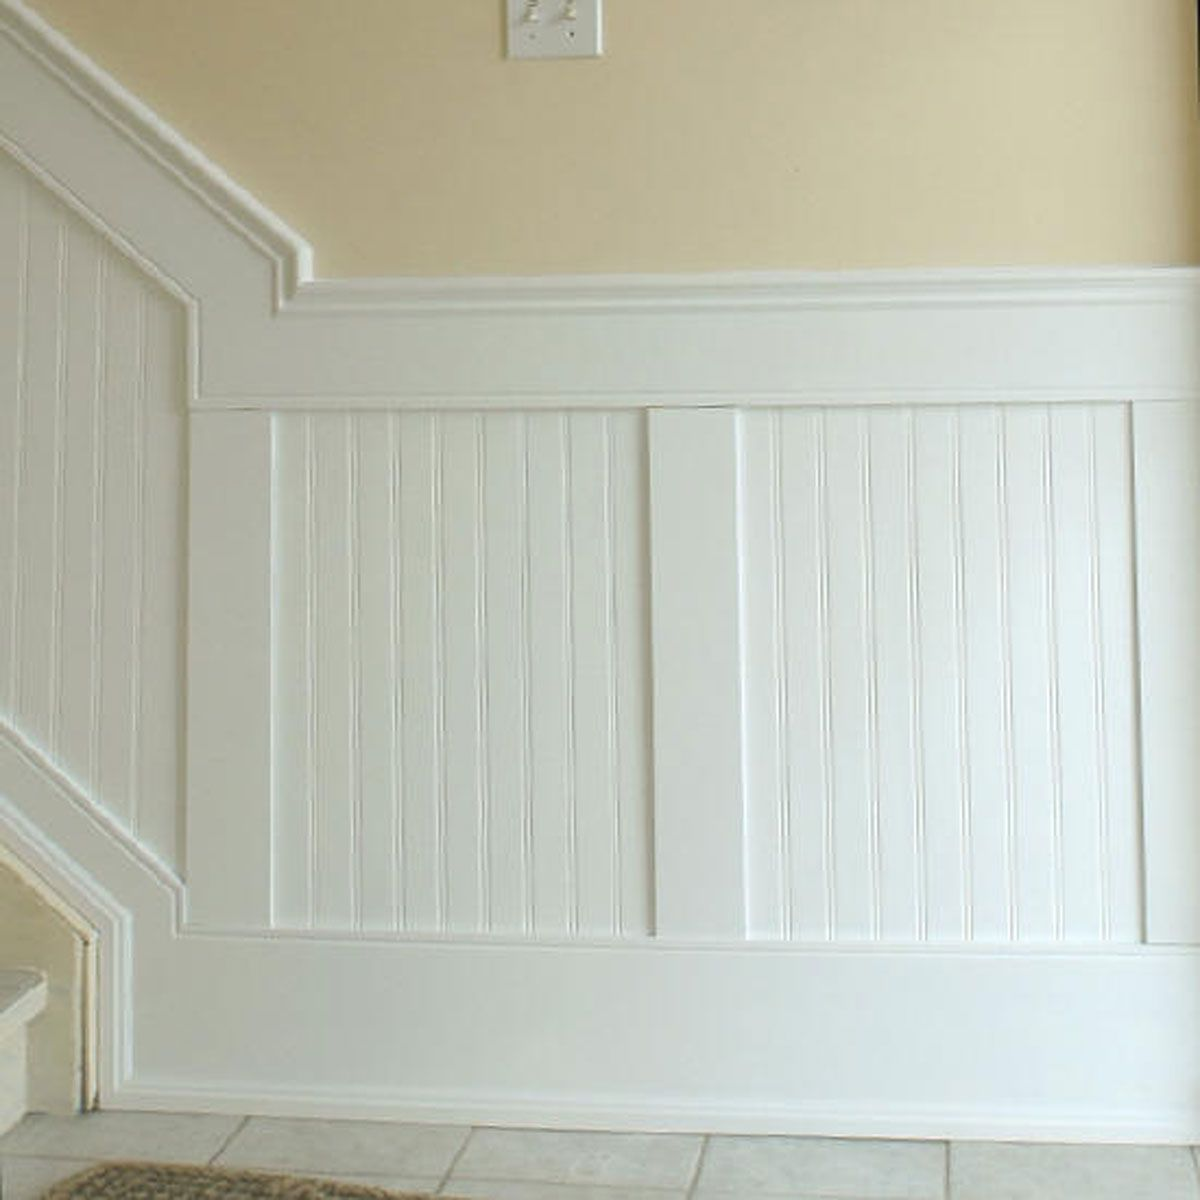 Beadboard panel wainscoting kit for the home pinterest for Wainscoting bathroom